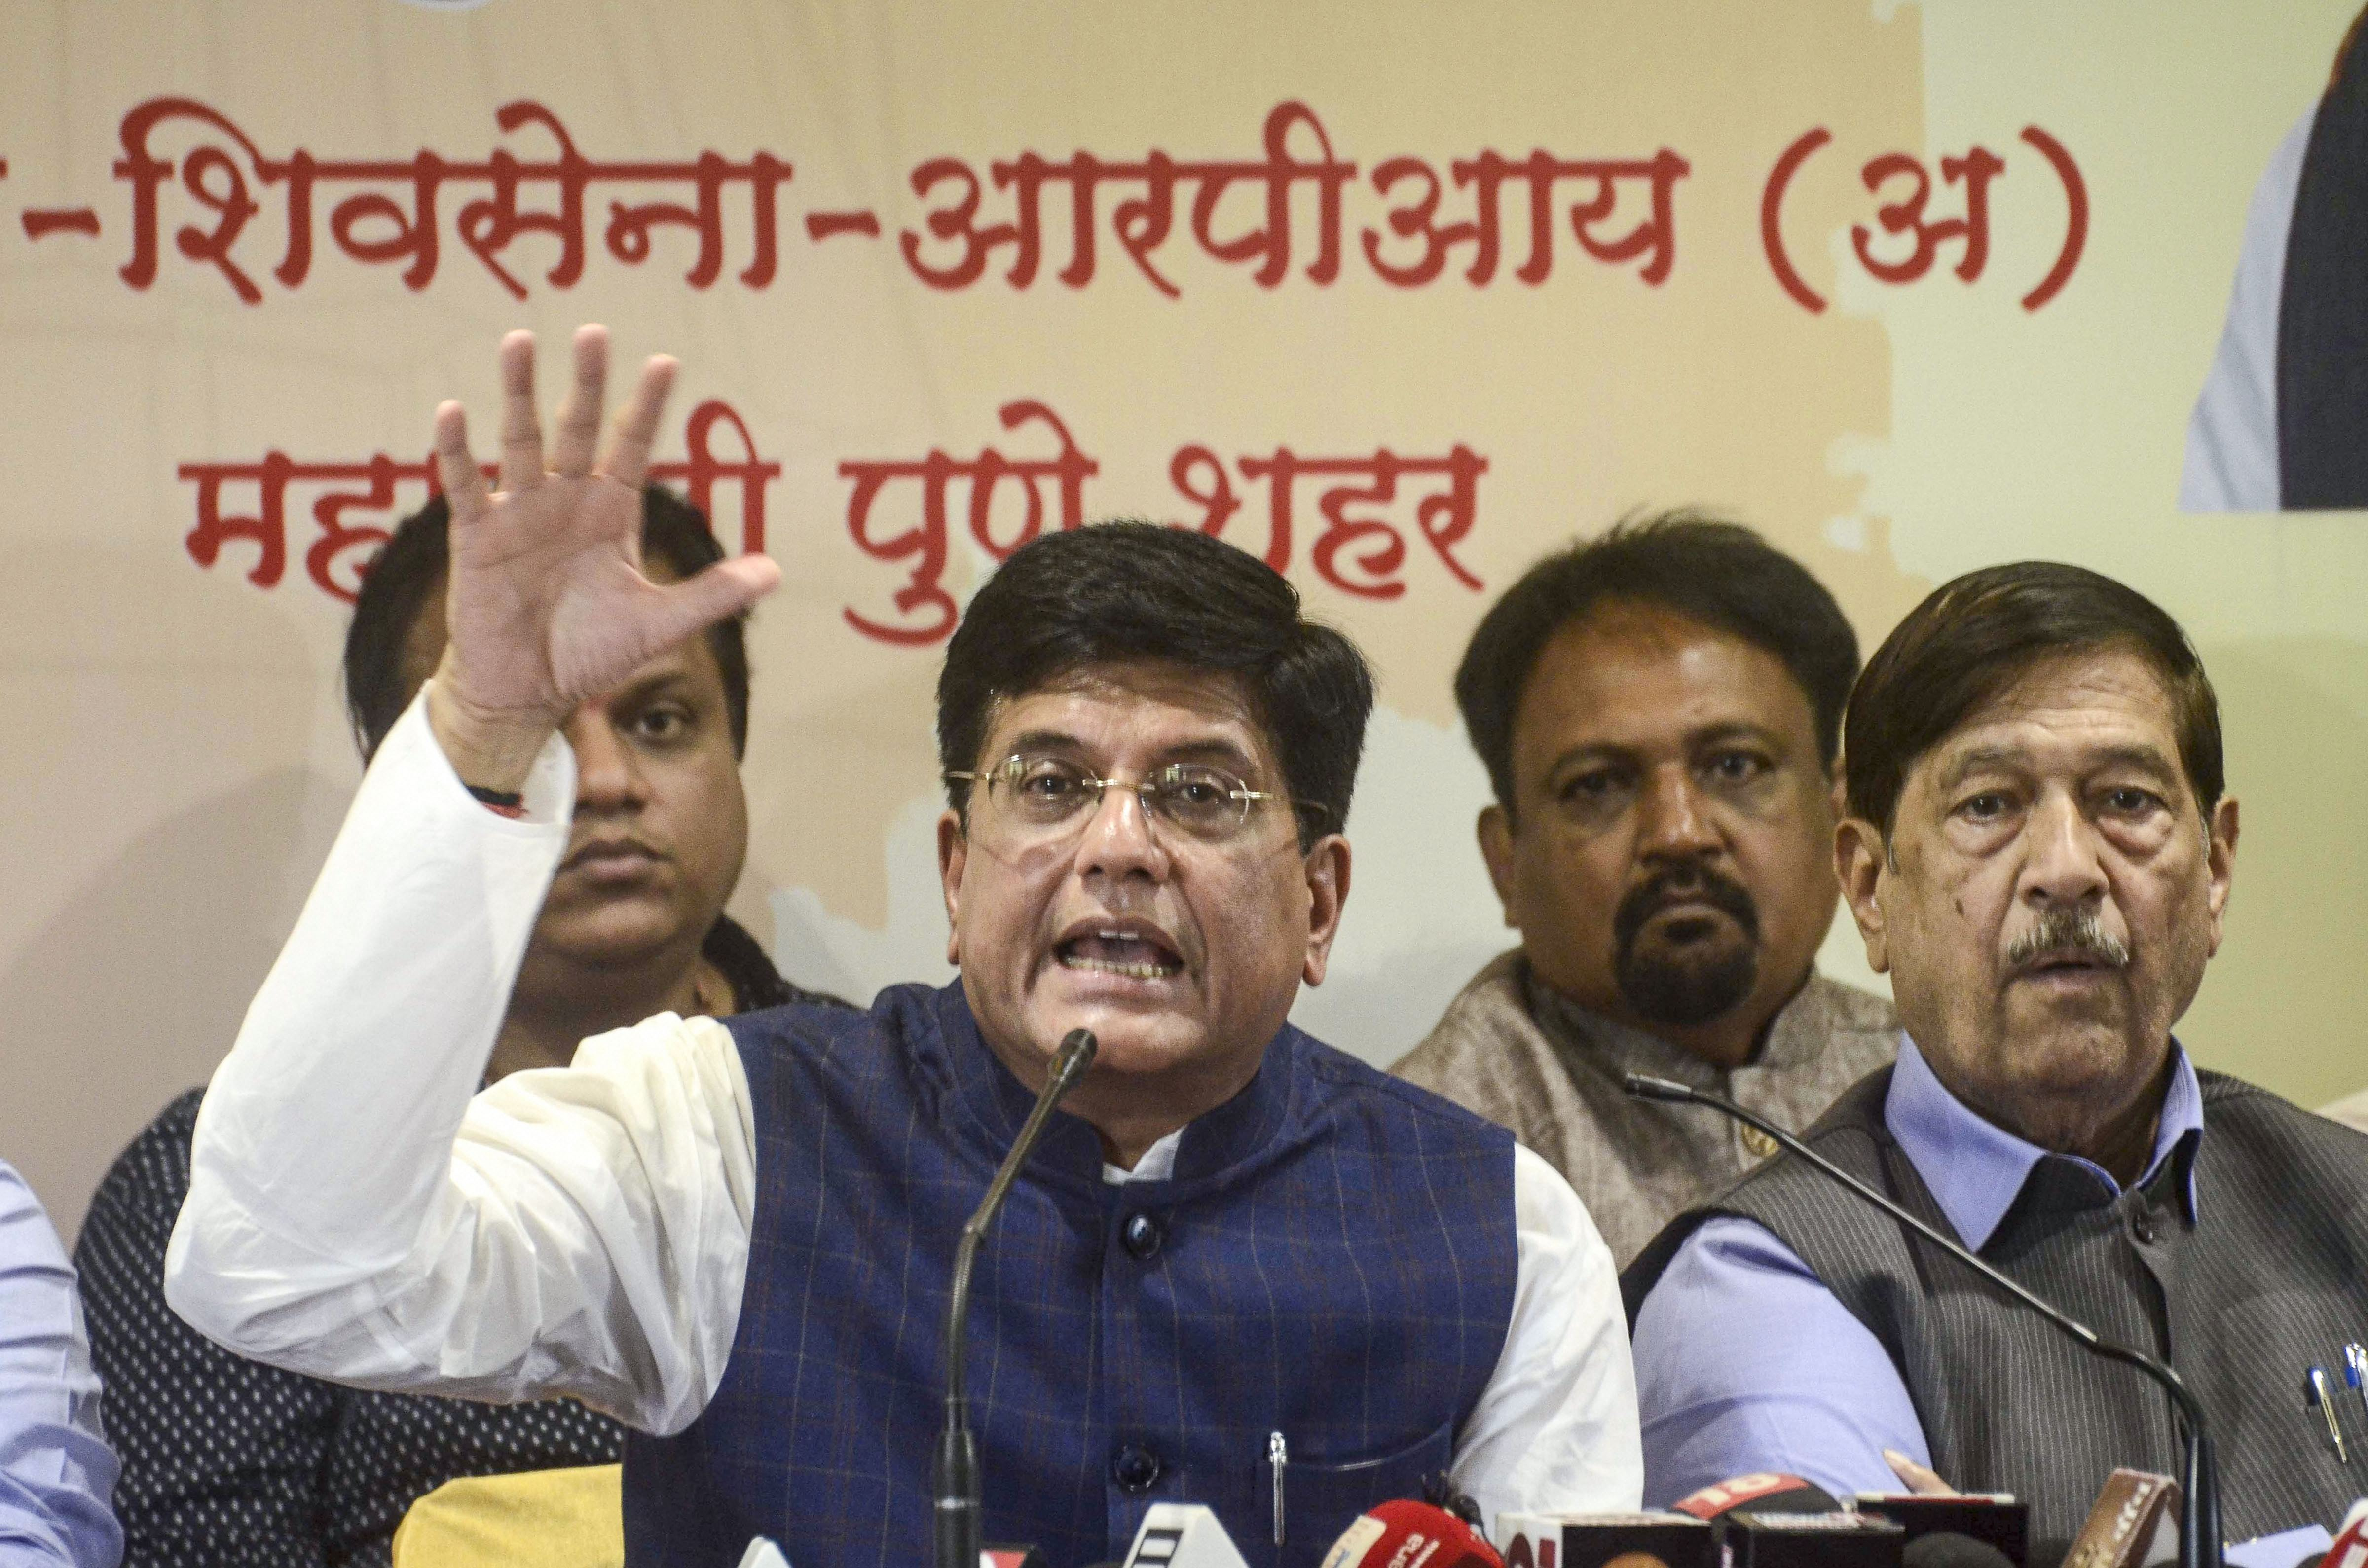 Union Minister Piyush Goyal addresses a press conference in Pune, Friday, October 18, 2019.